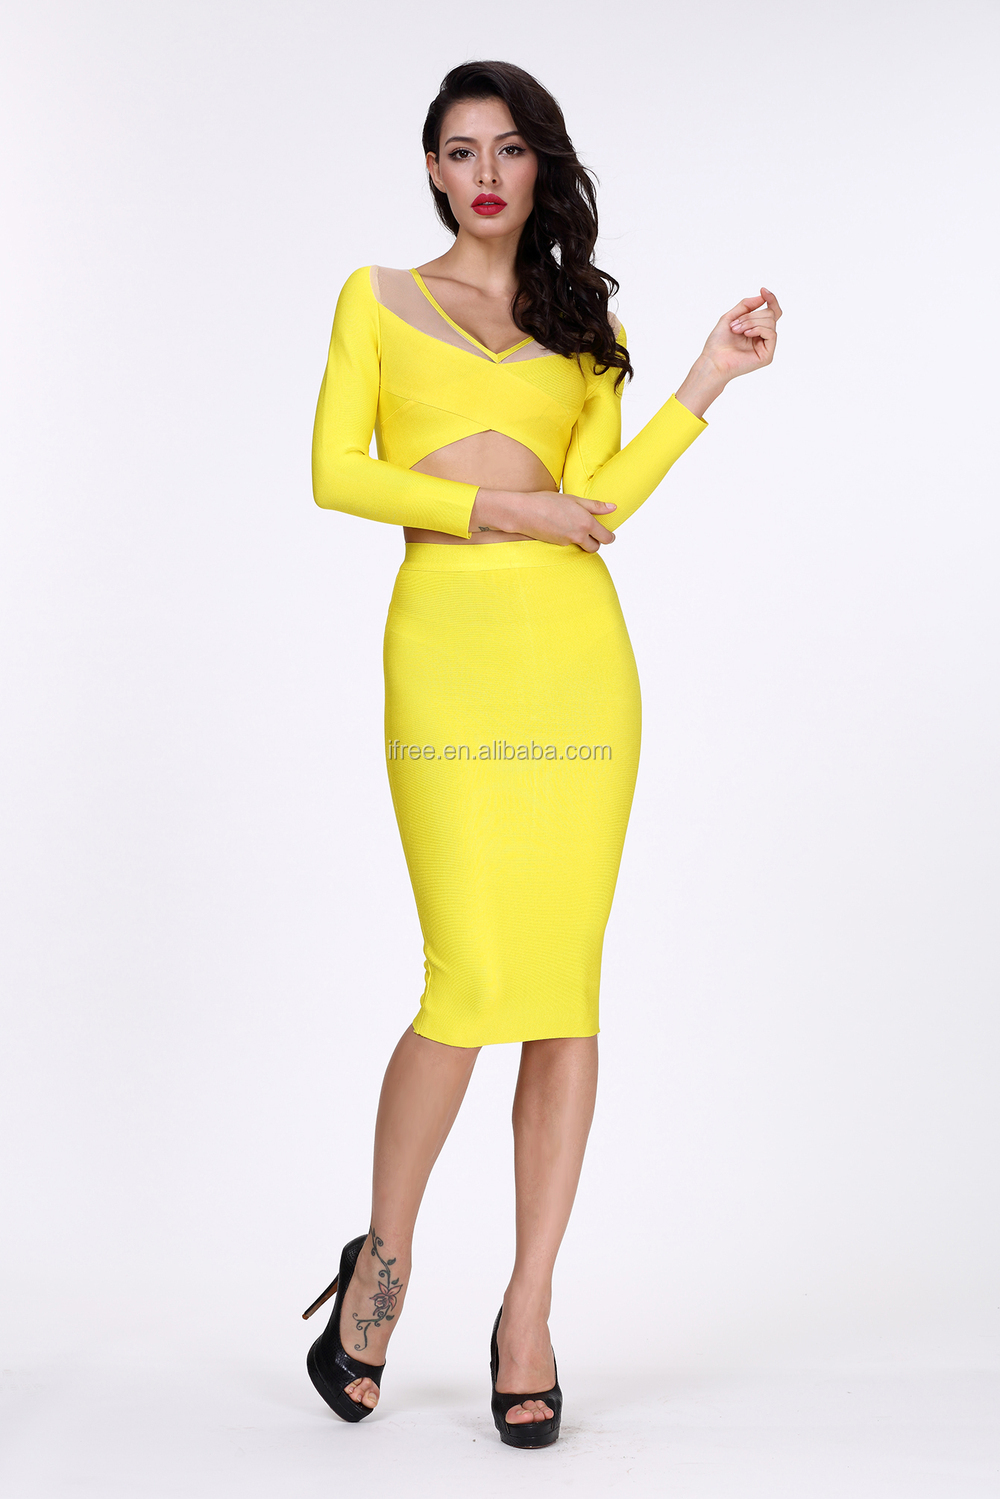 Unik Desain Ifree Kuning Grils Gaun Renda Gaun Pesta Cocktail Dress